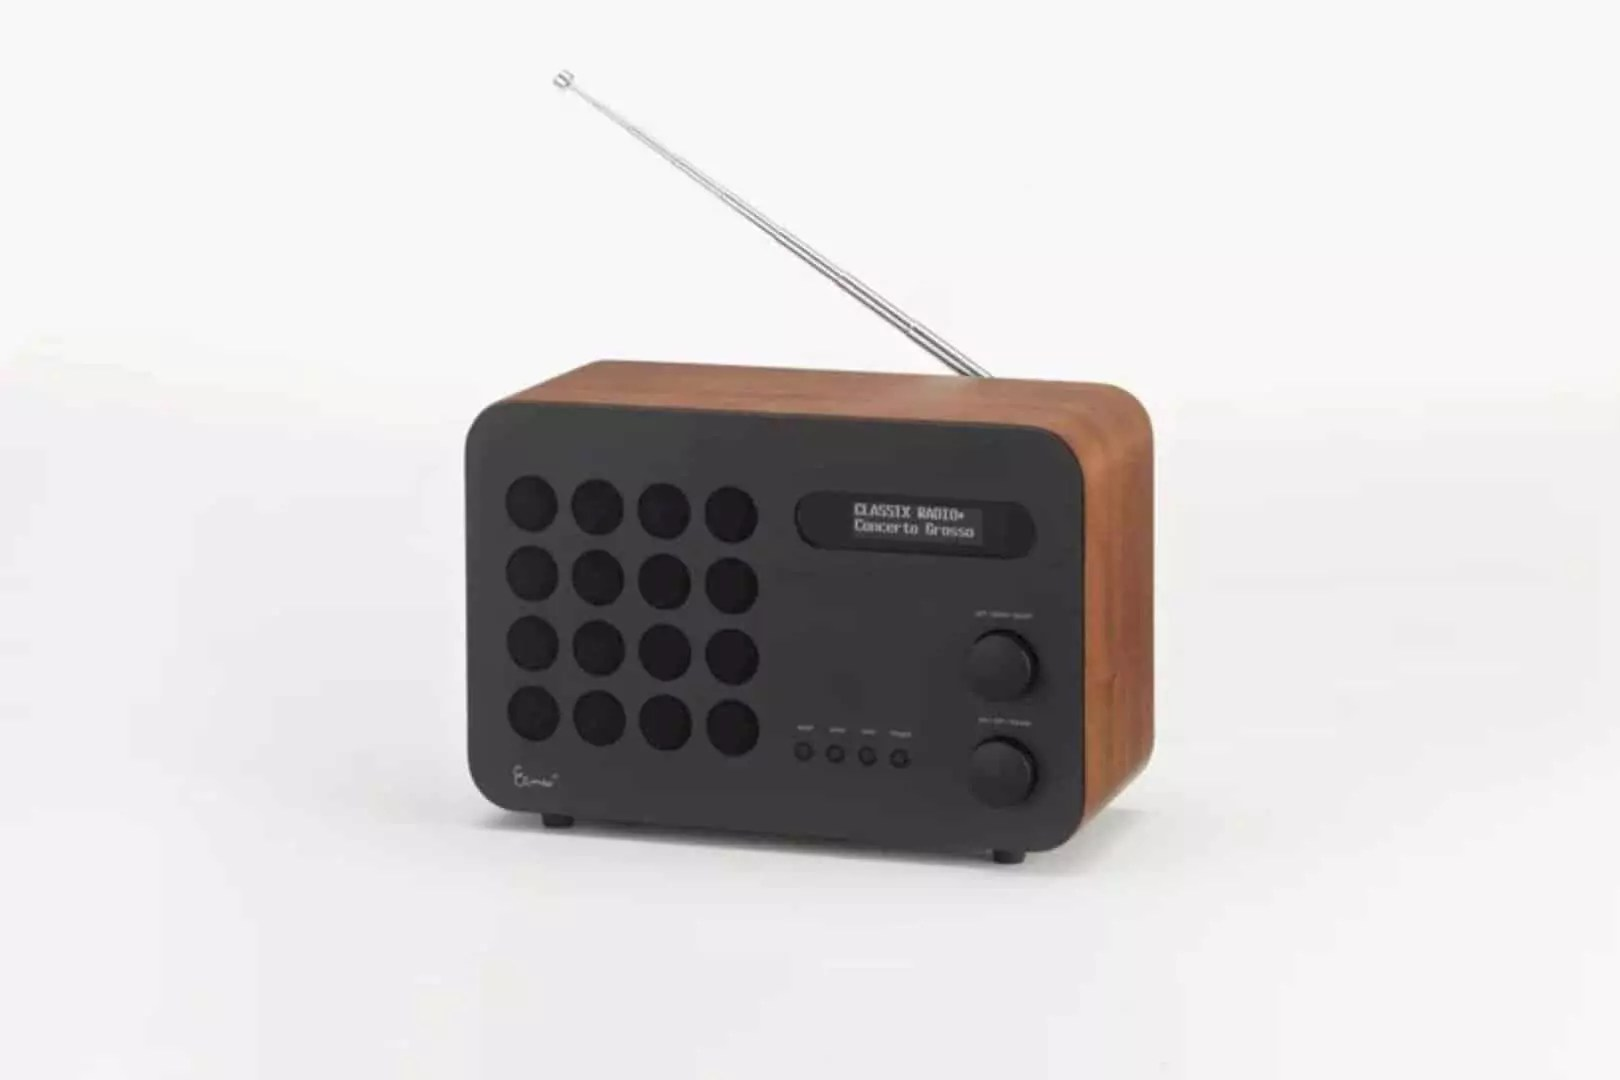 Eames Radio: The Re-imagined Version of Good 'Ol Radio From 1940s